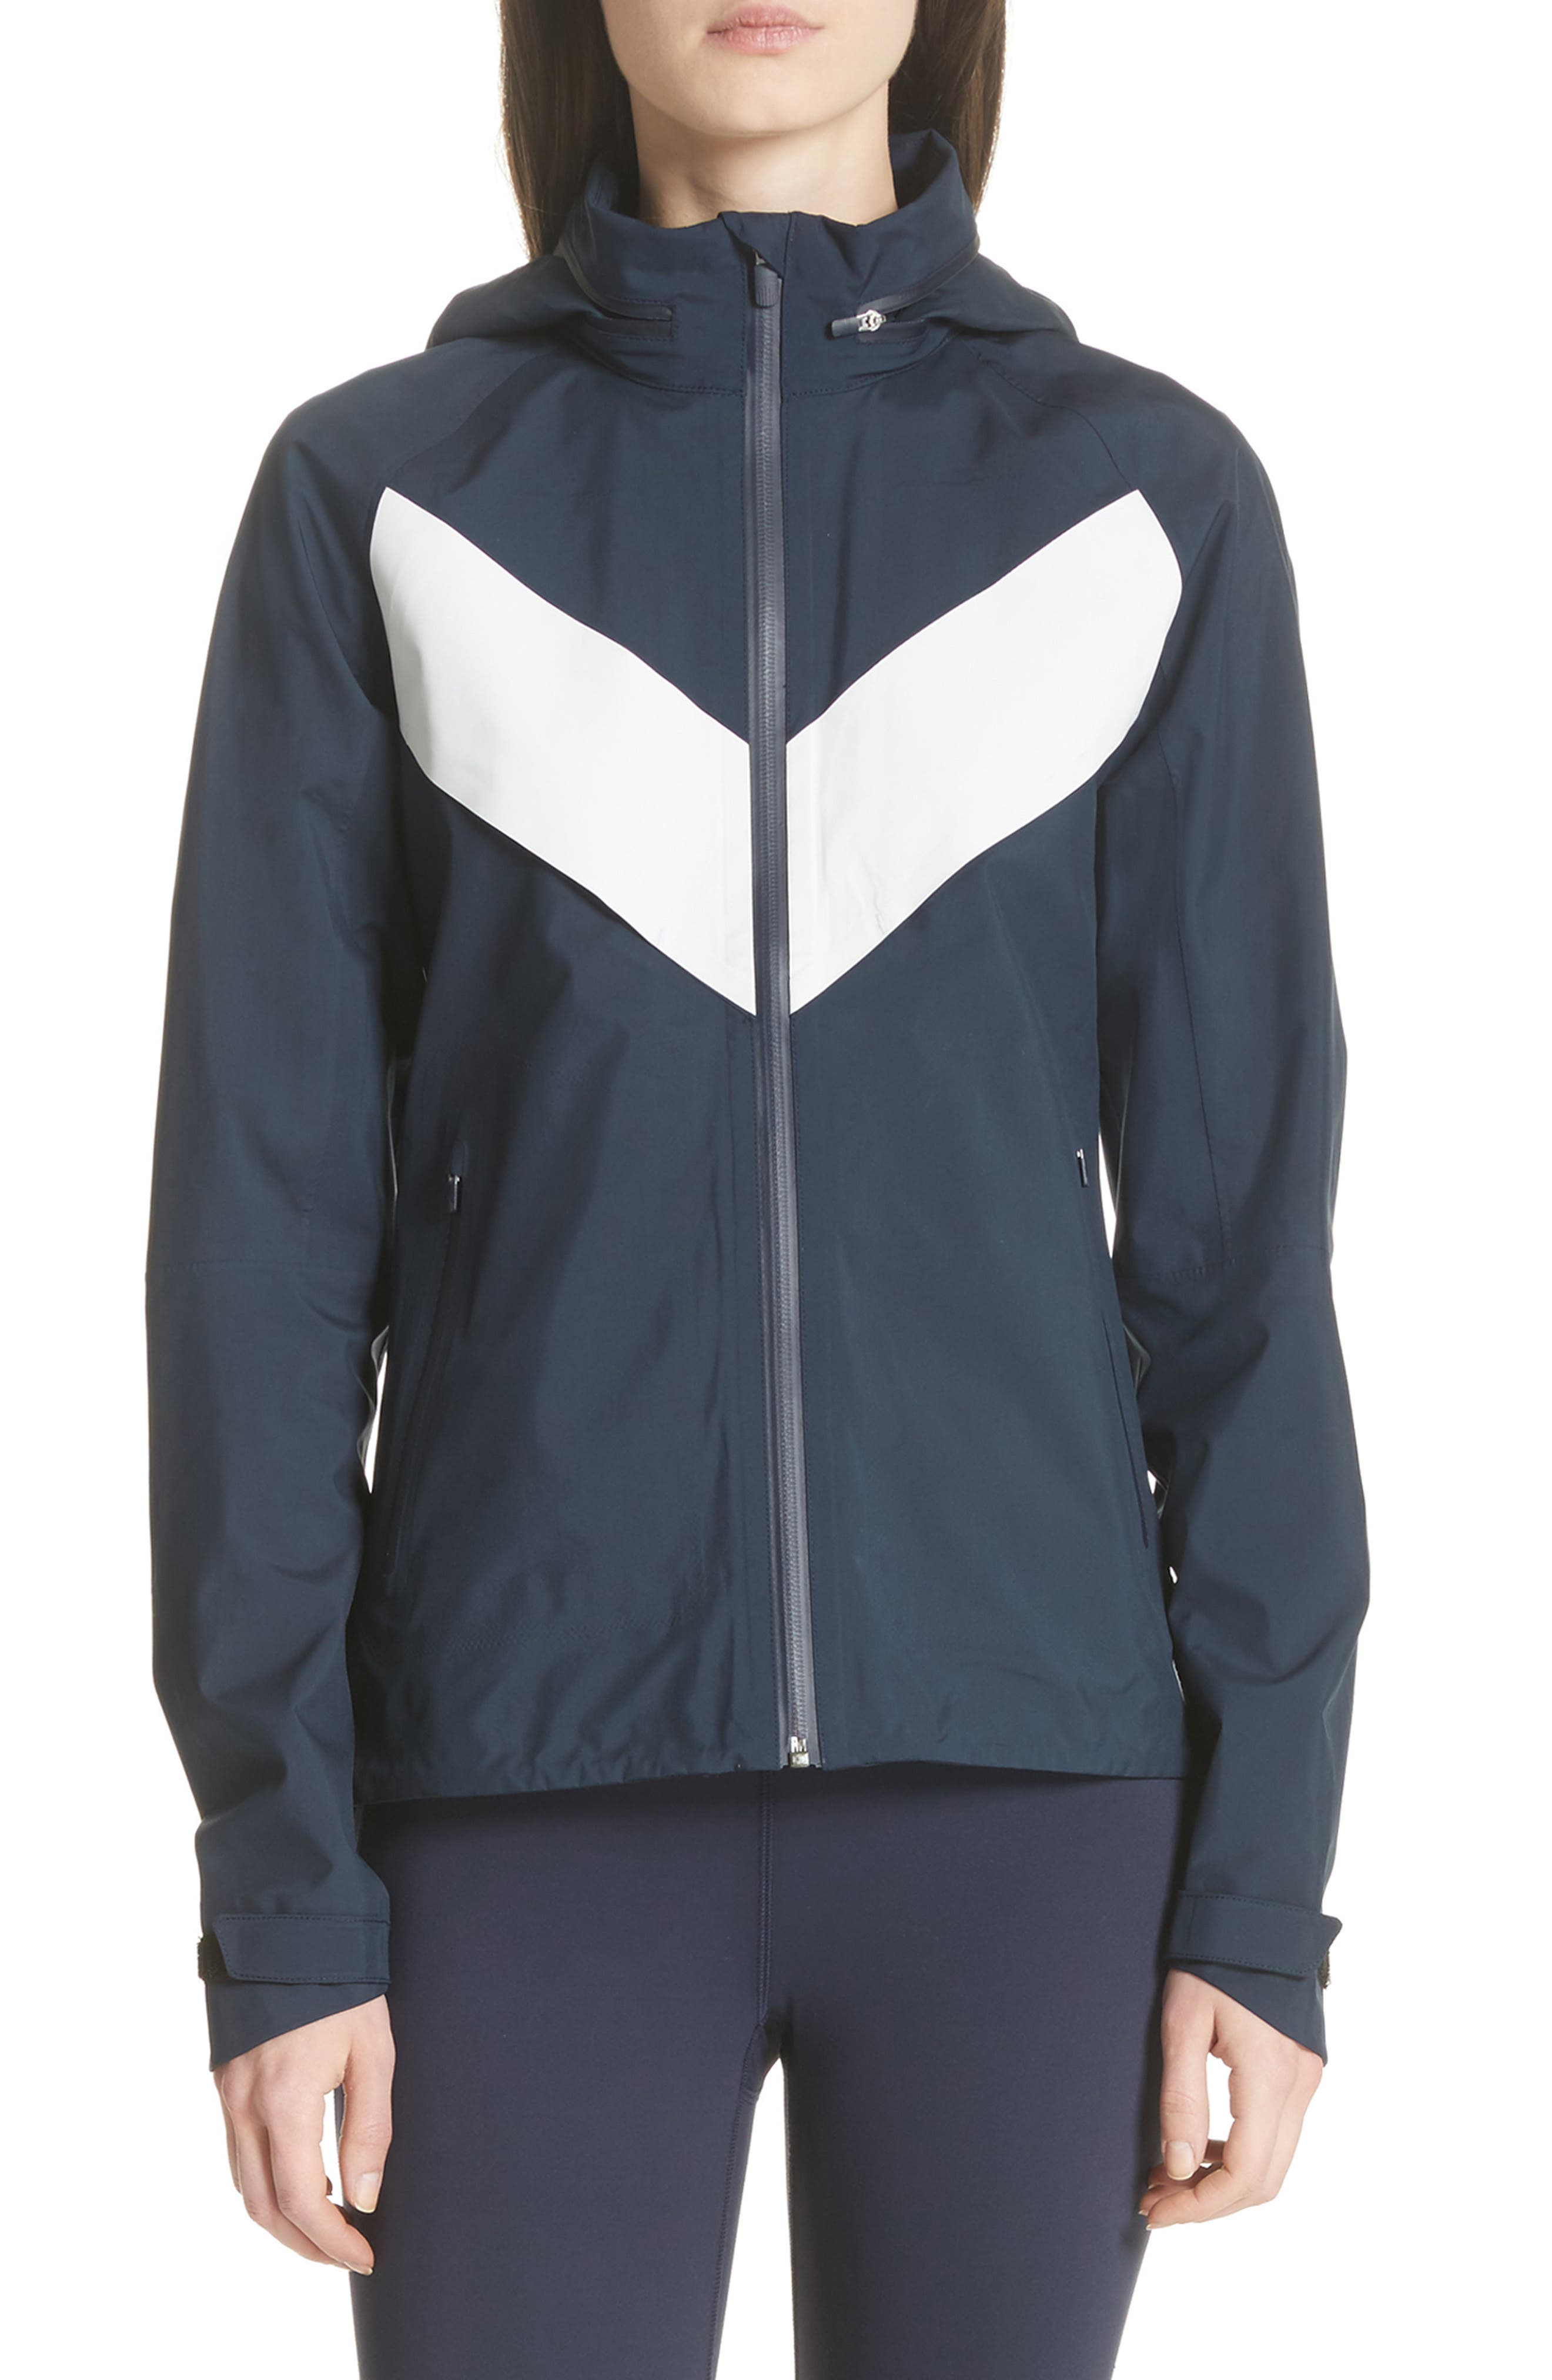 All Weather Run Jacket,                         Main,                         color, TORY NAVY/ WHITE SNOW